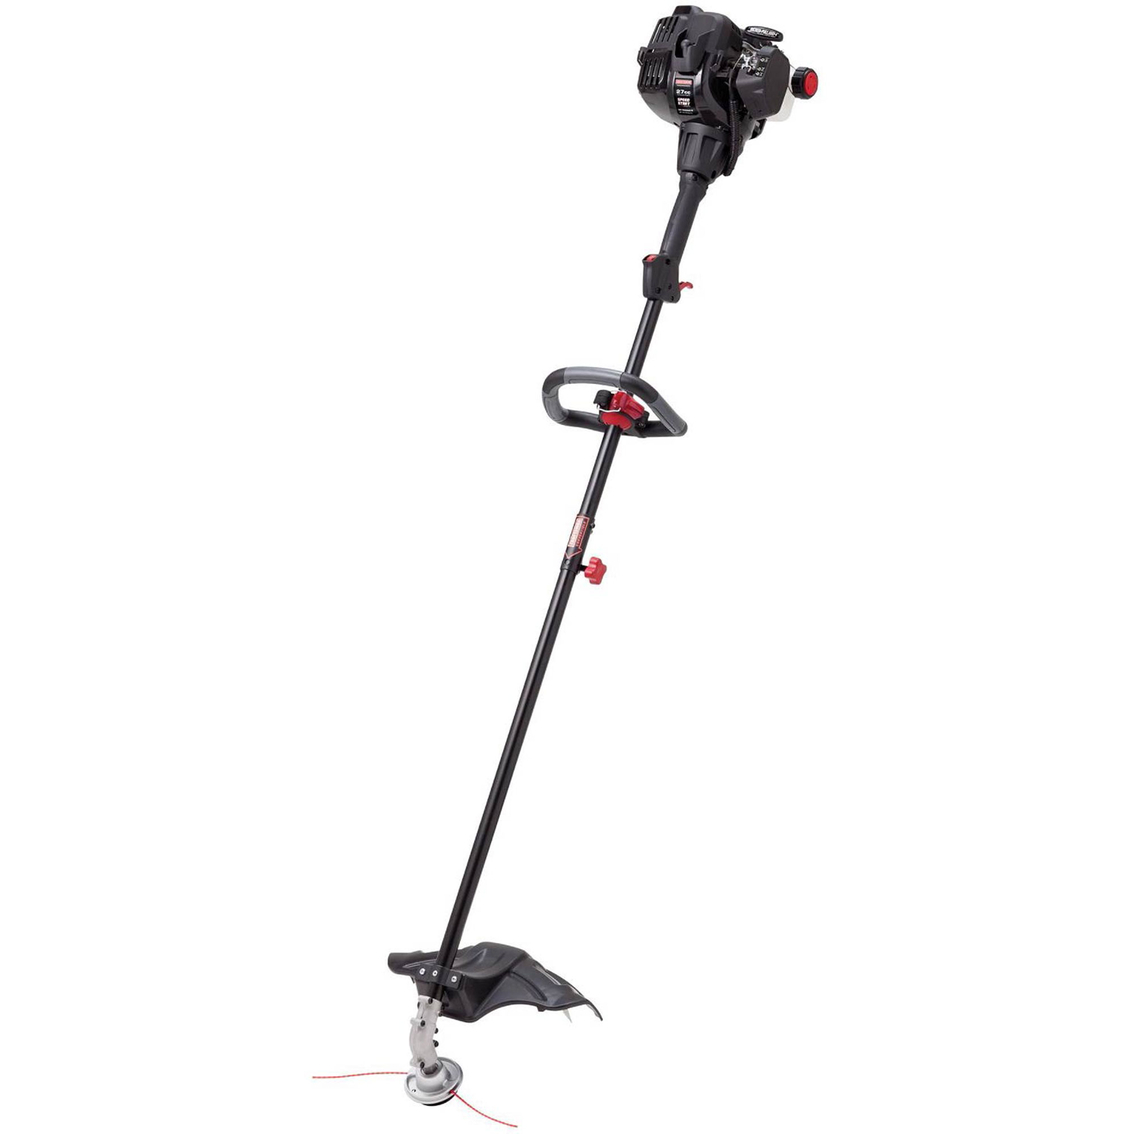 Craftsman Straight Shaft Weedwacker Gas Trimmer